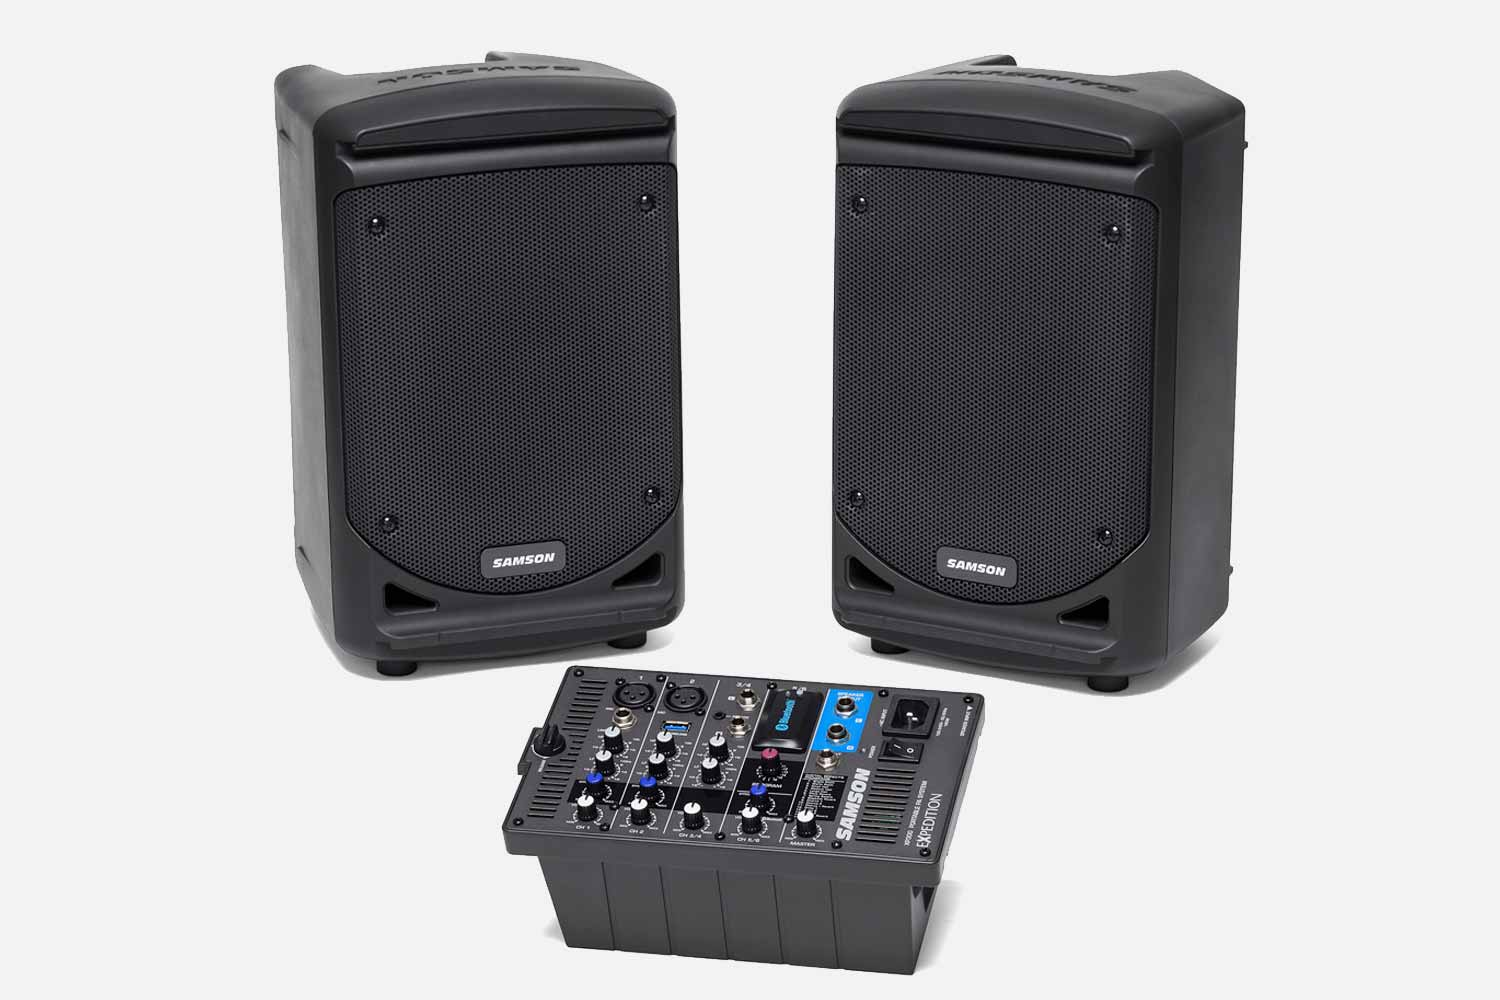 Samson XP300 - 300-Watt Portable PA (5365979644068)